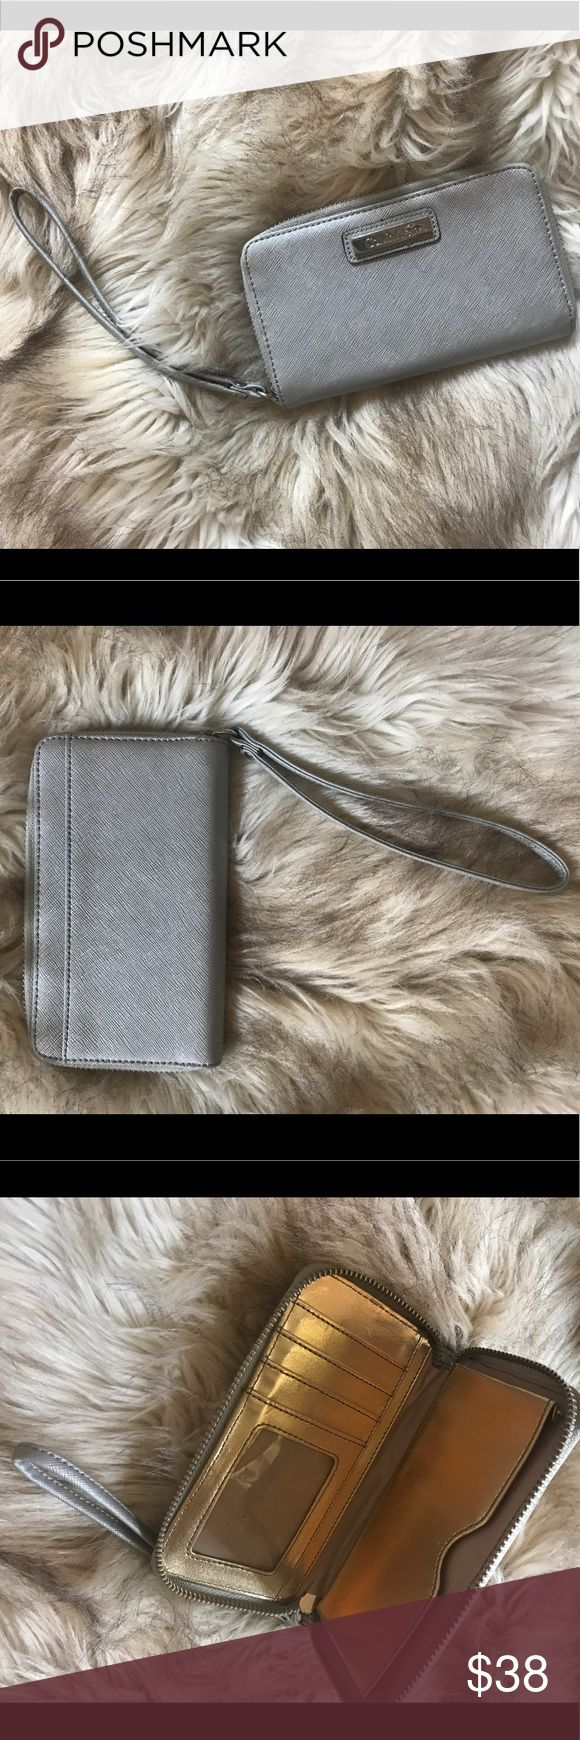 *CALVIN KLEIN* SILVER WRISTLET Silver wristlet from Calvin Klein. Gold interior with see through ID slot and 4 card slots and a cellphone pocket. Will hold phone as big as iPhone 5s. Calvin Klein Bags Wallets